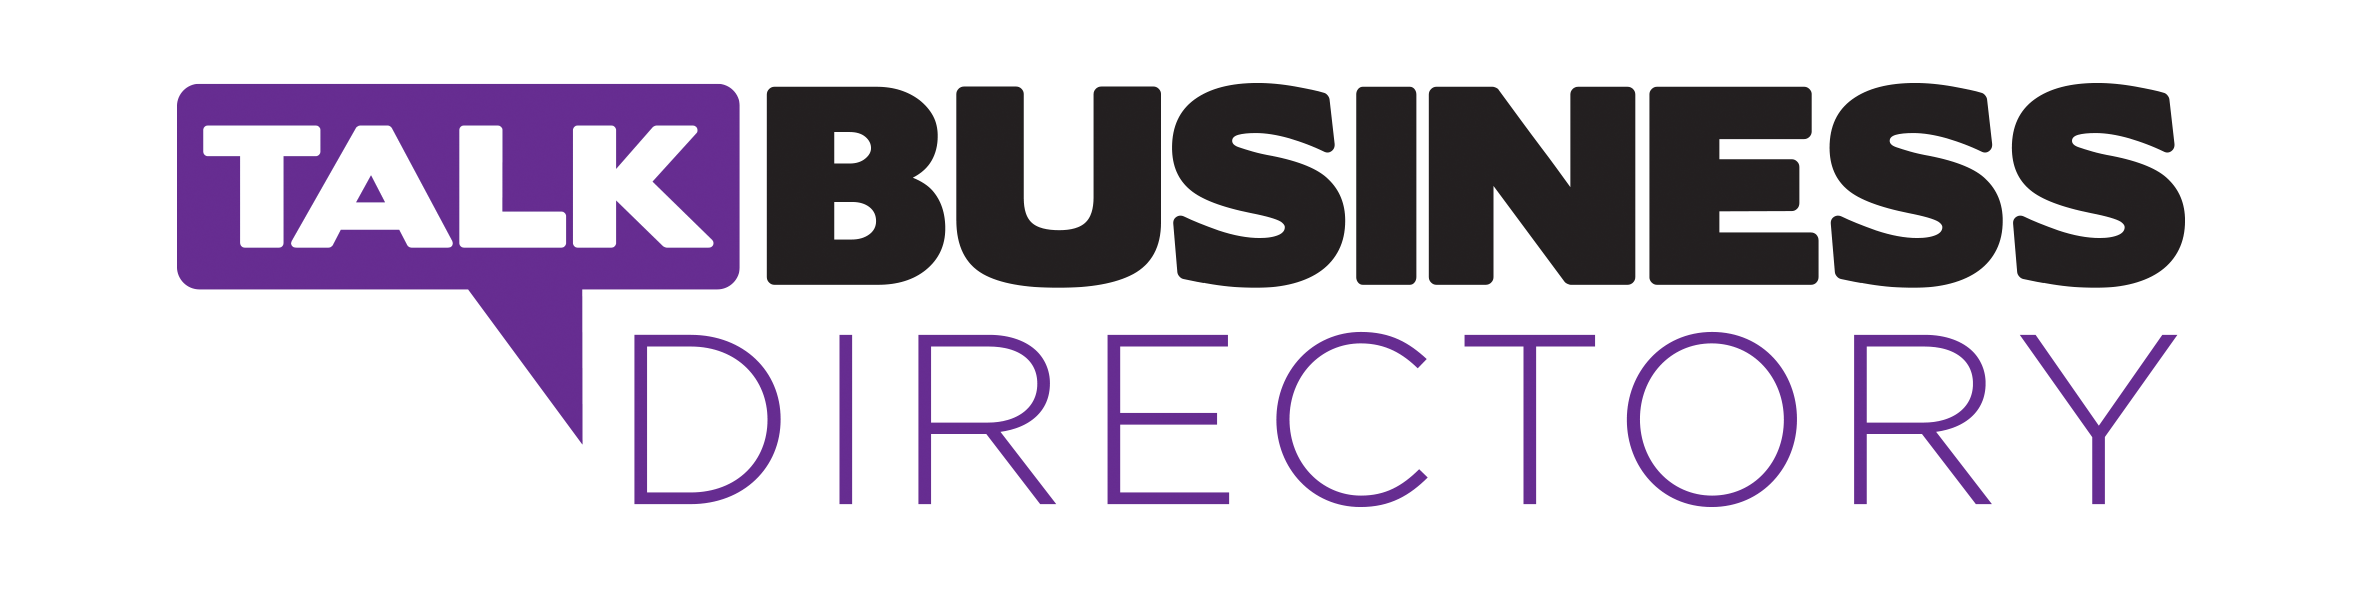 Talkbusiness directory